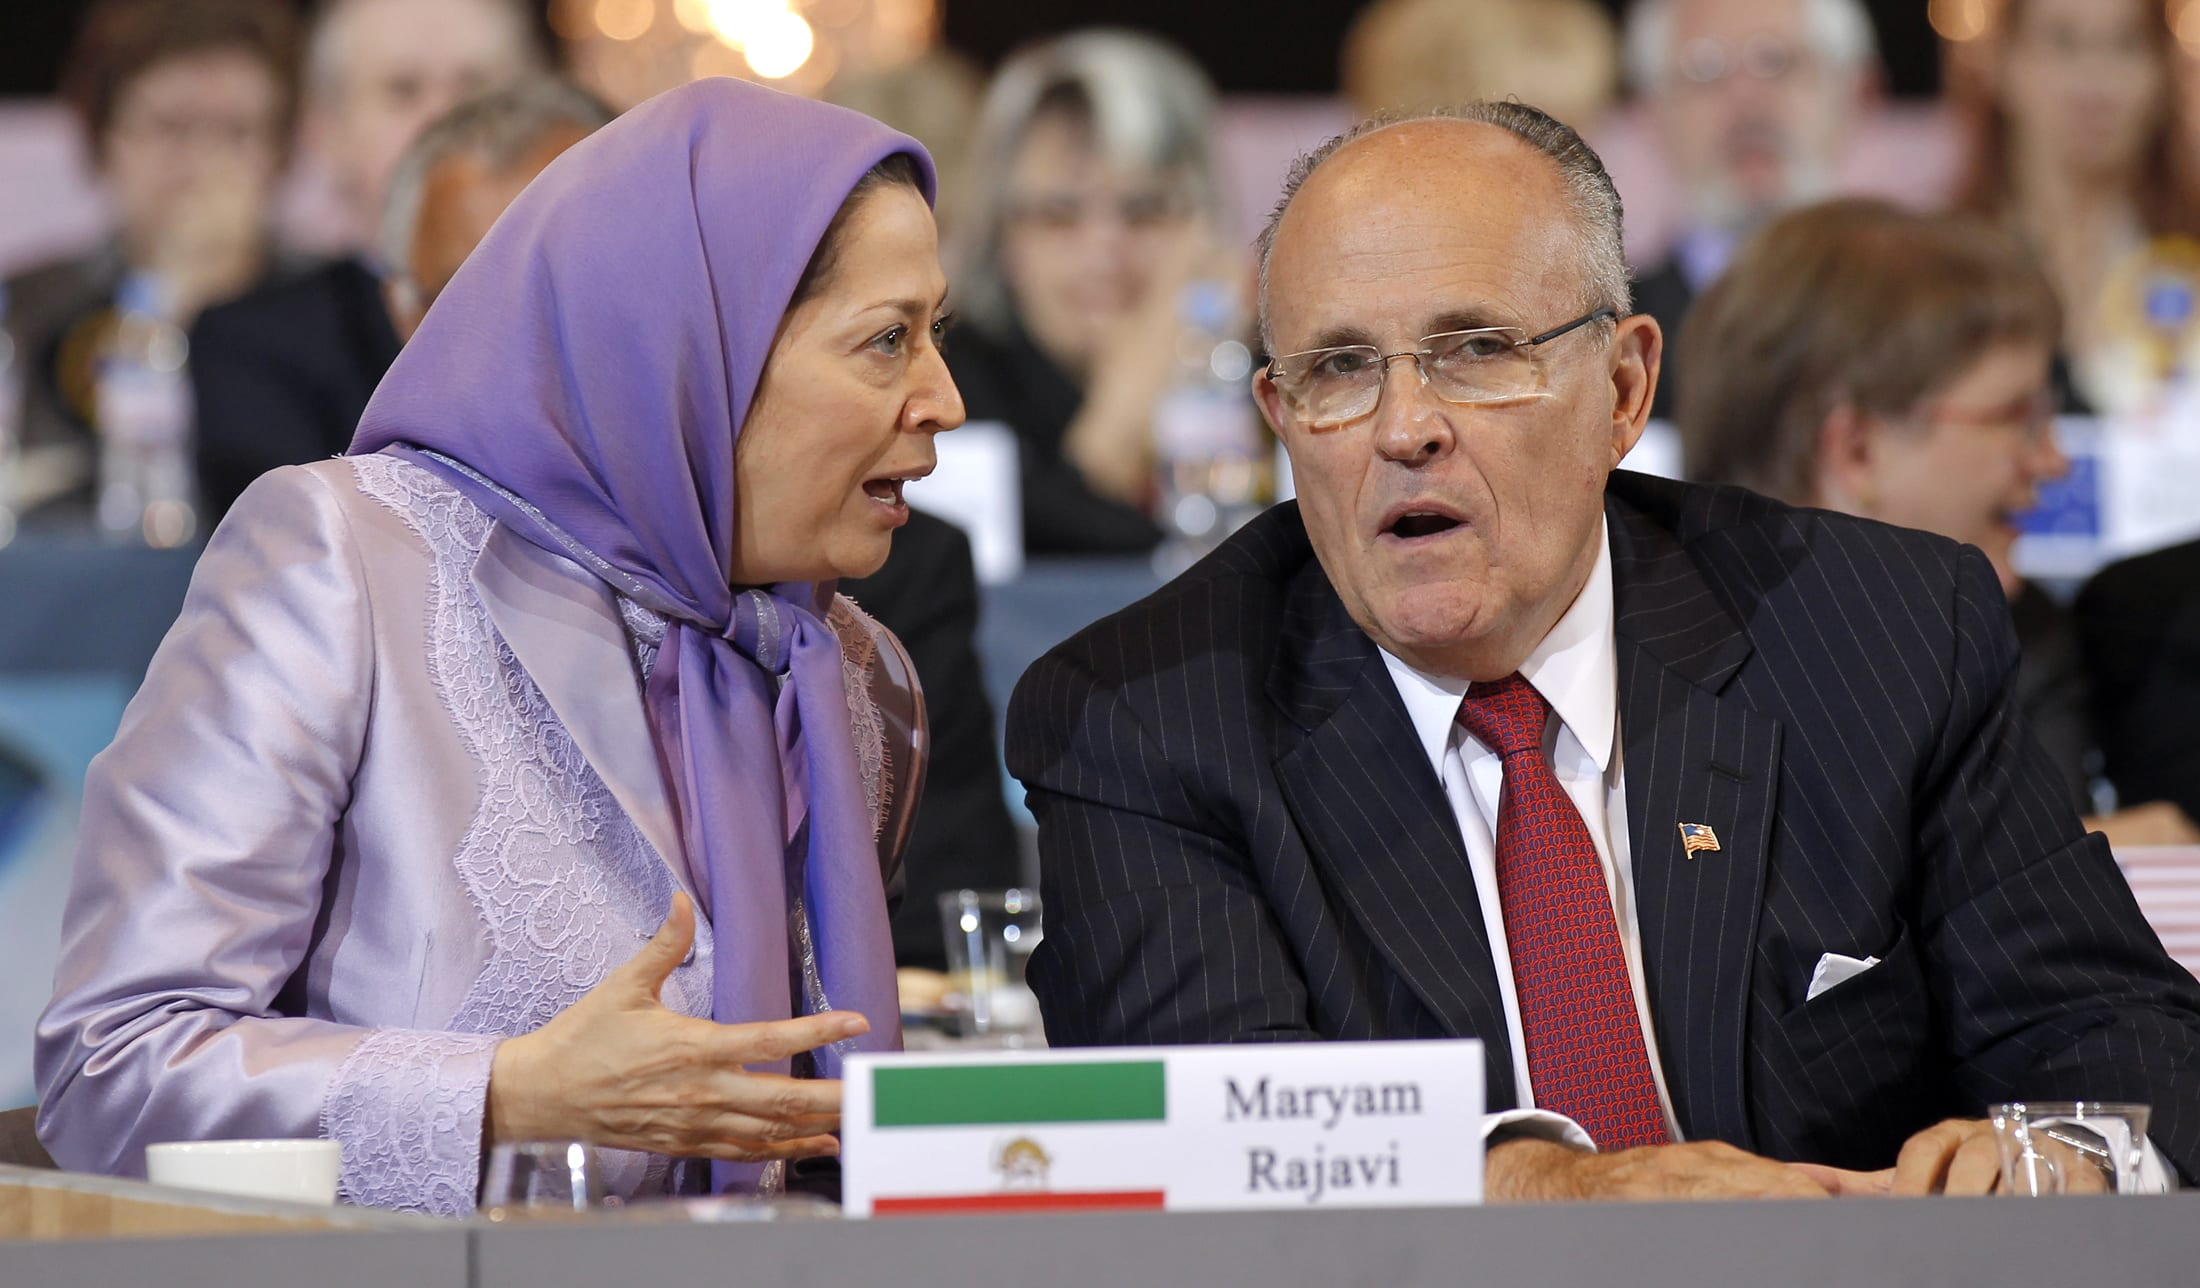 Image Maryam Rajavi, president-elect of the People's Mujahideen Organisation of Iran's (PMOI) political wing, the National Council of Resistance of Iran (NCRI) and former mayor of New York Rudy Giuliani take part in a rally in Villepinte, near Paris June 18, 2011. [REUTERS / Benoit Tessier]